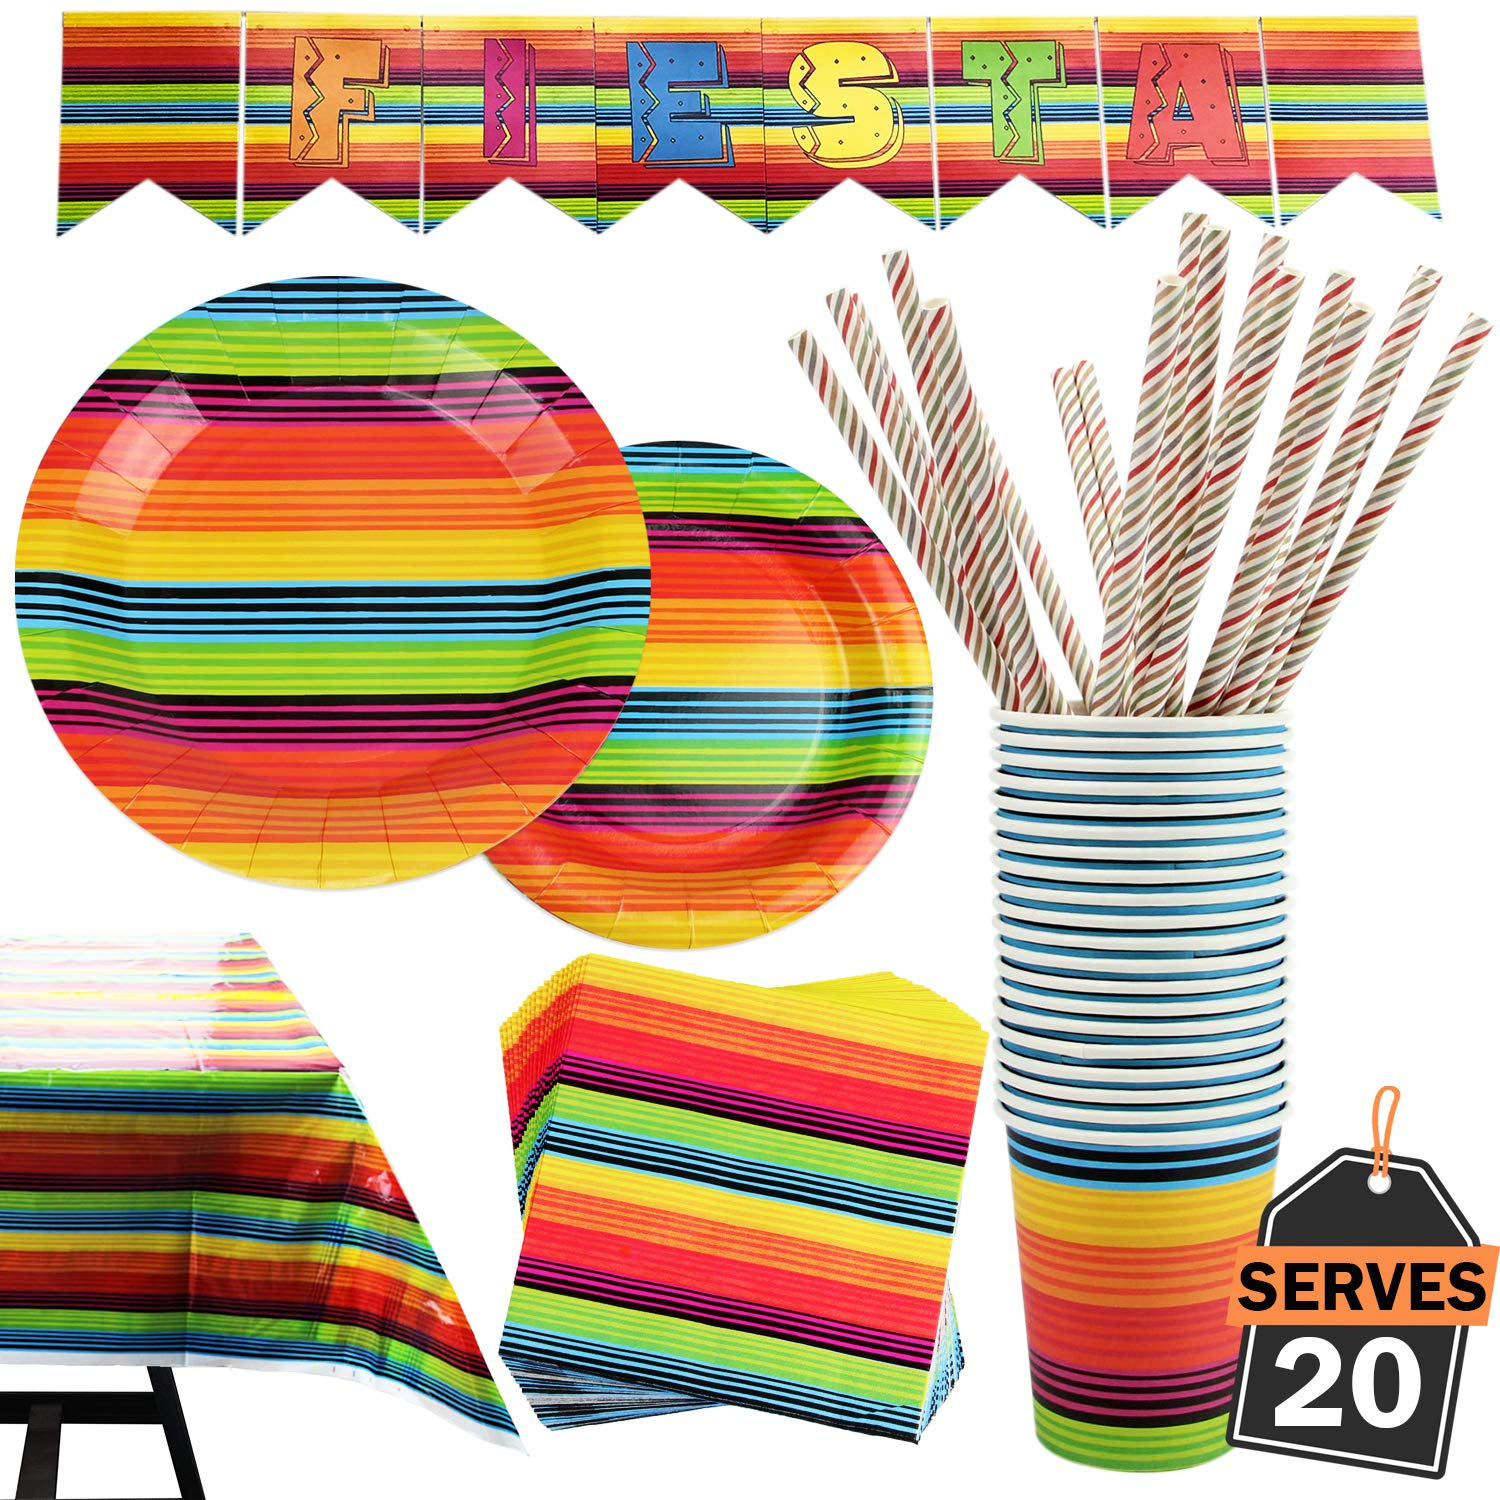 102 Piece Fiesta Party Supplies Set Including Banner, Plates, Cups, Napkins, Tablecloth, Straws, Serves 20 by Scale Rank